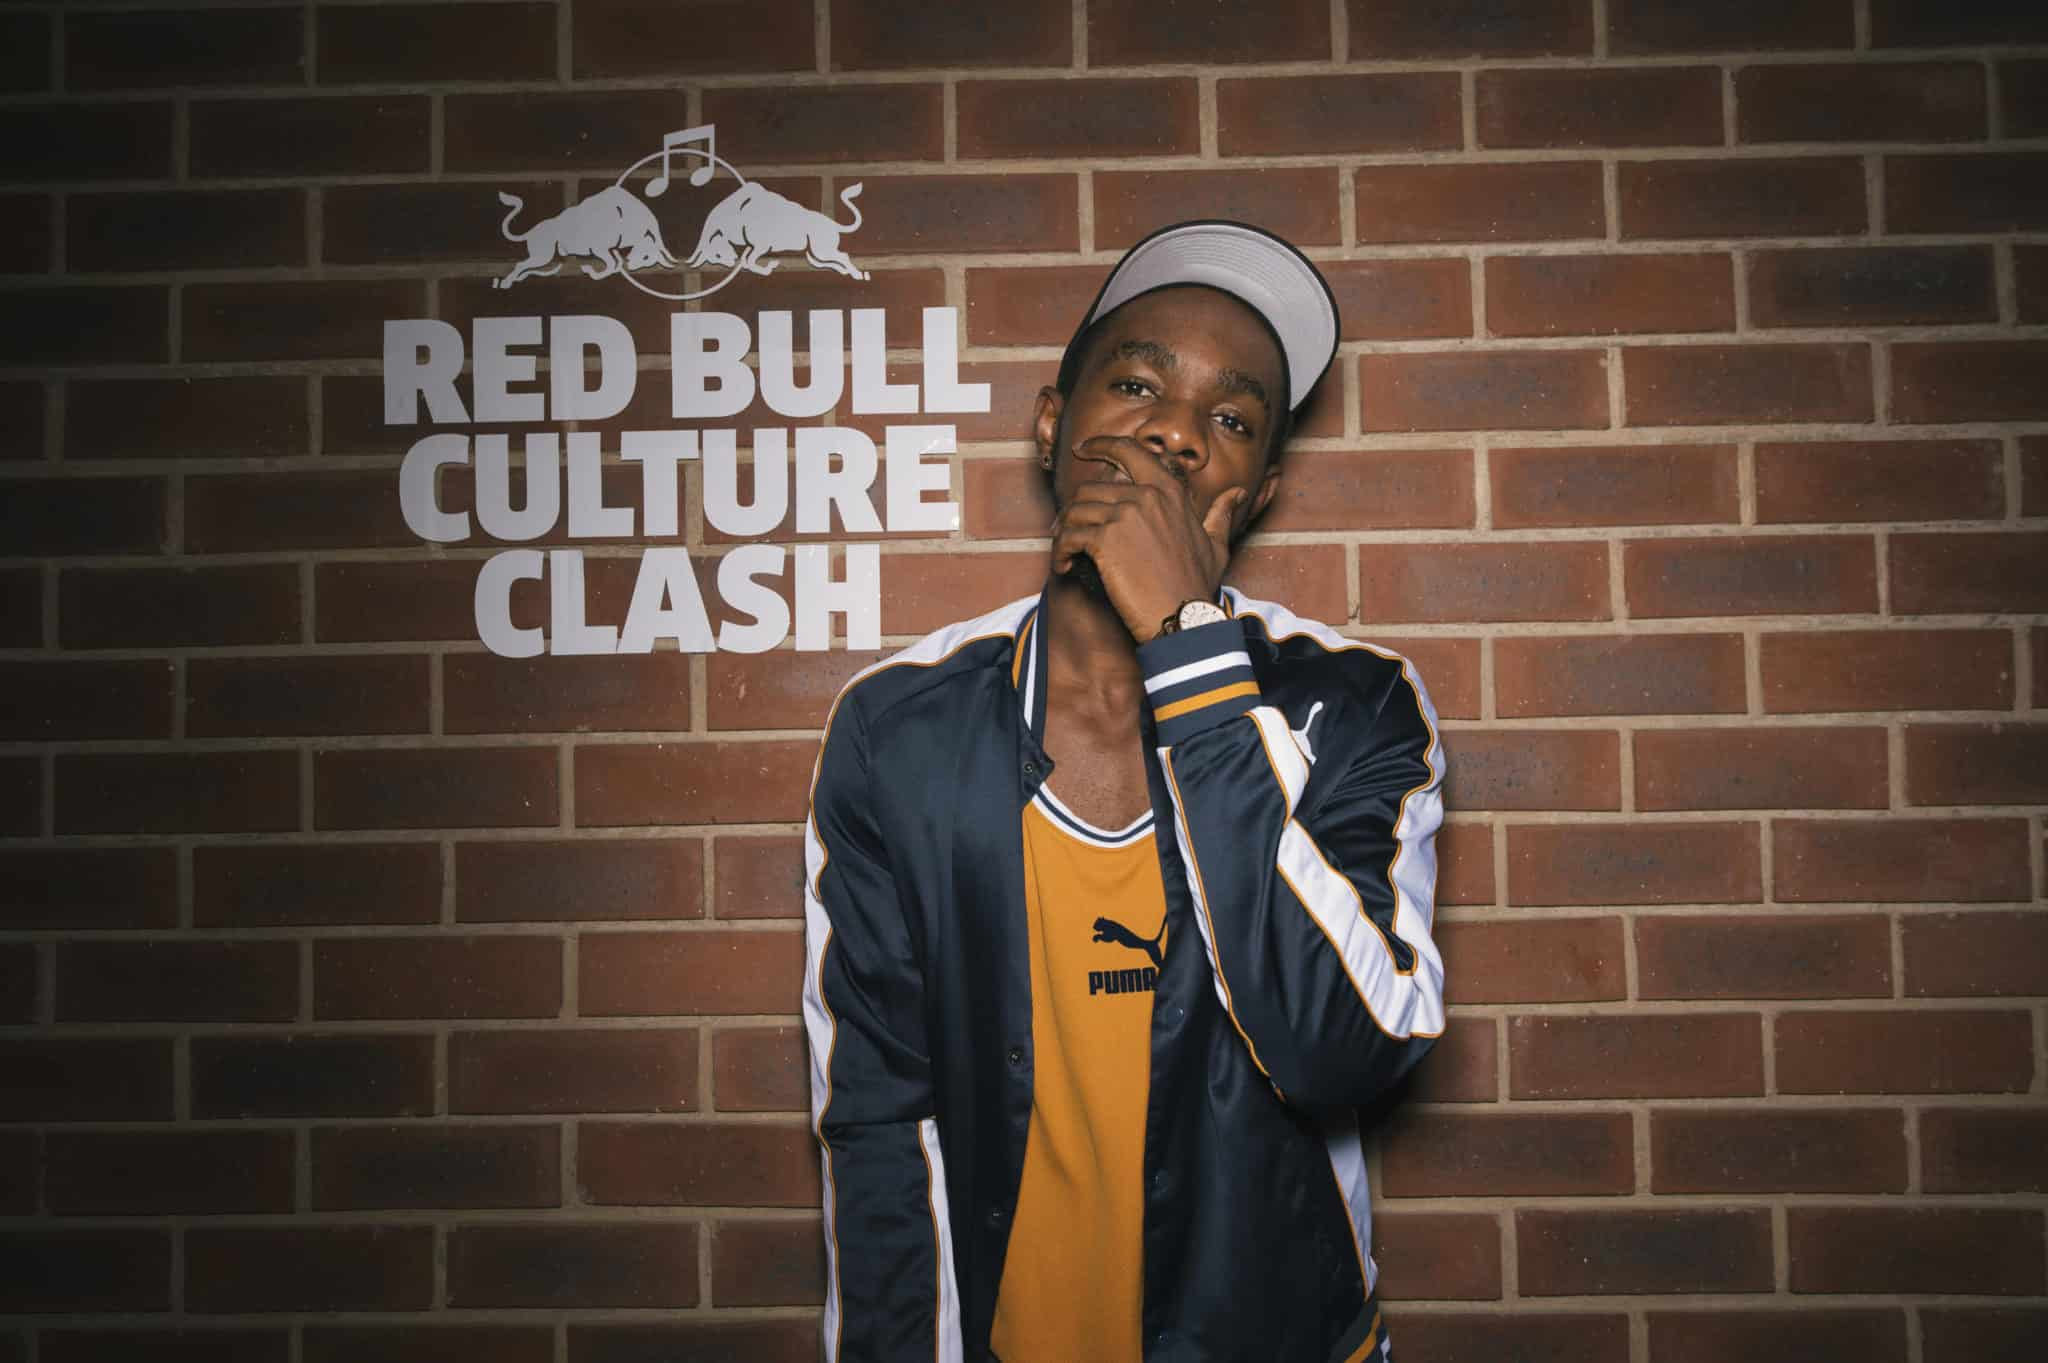 We caught up with Patoranking at the Red Bull Culture Clash in Johannesburg